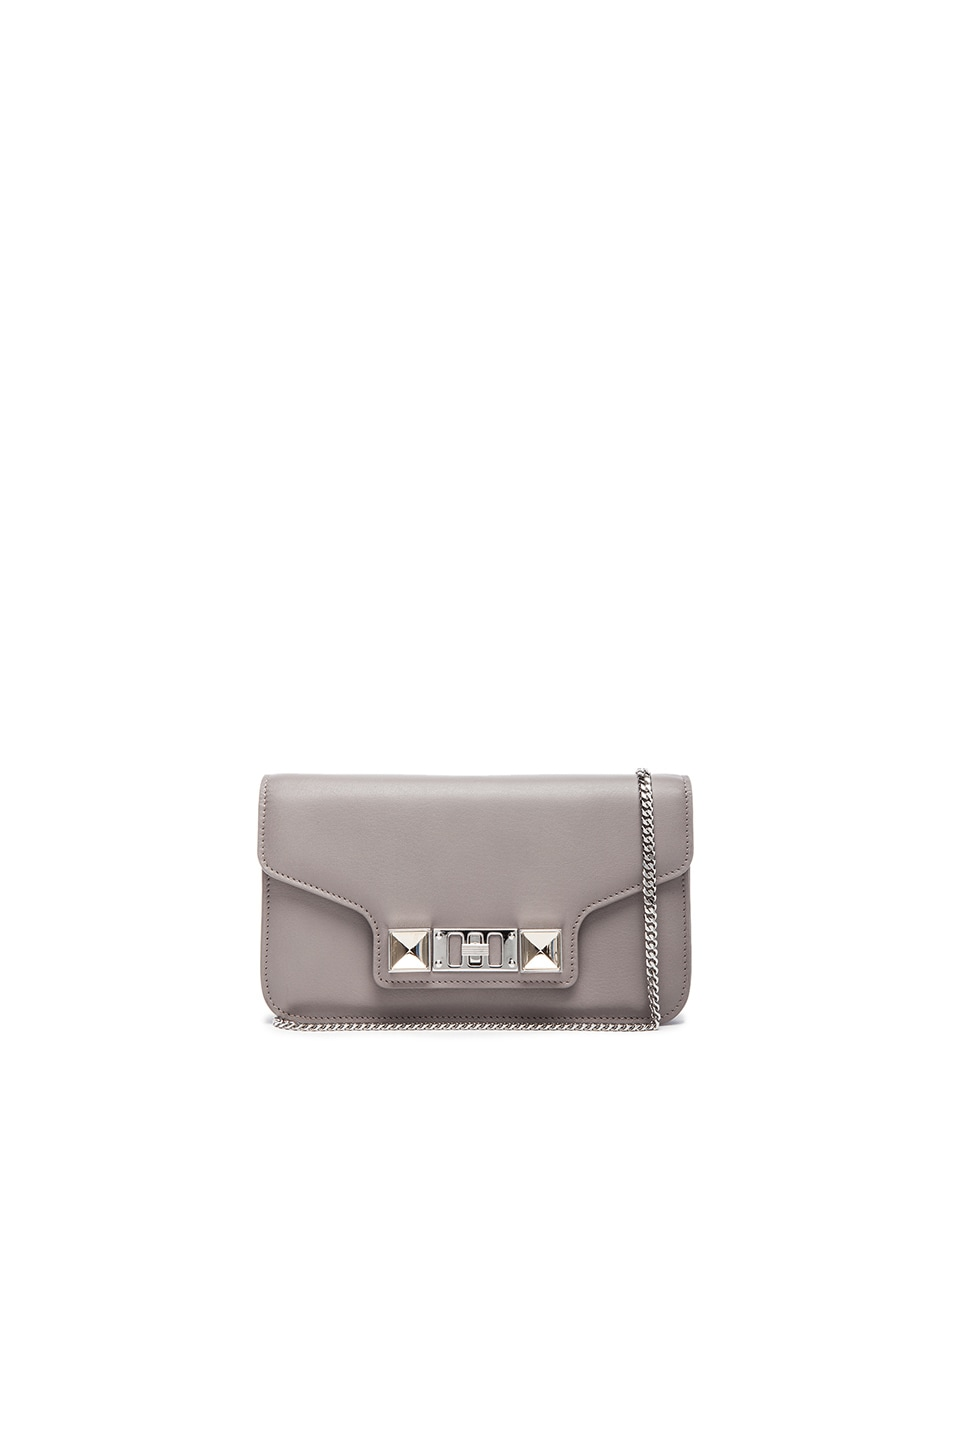 Image 1 of Proenza Schouler PS11 Smooth Calf Leather Chain Wallet in Mushroom